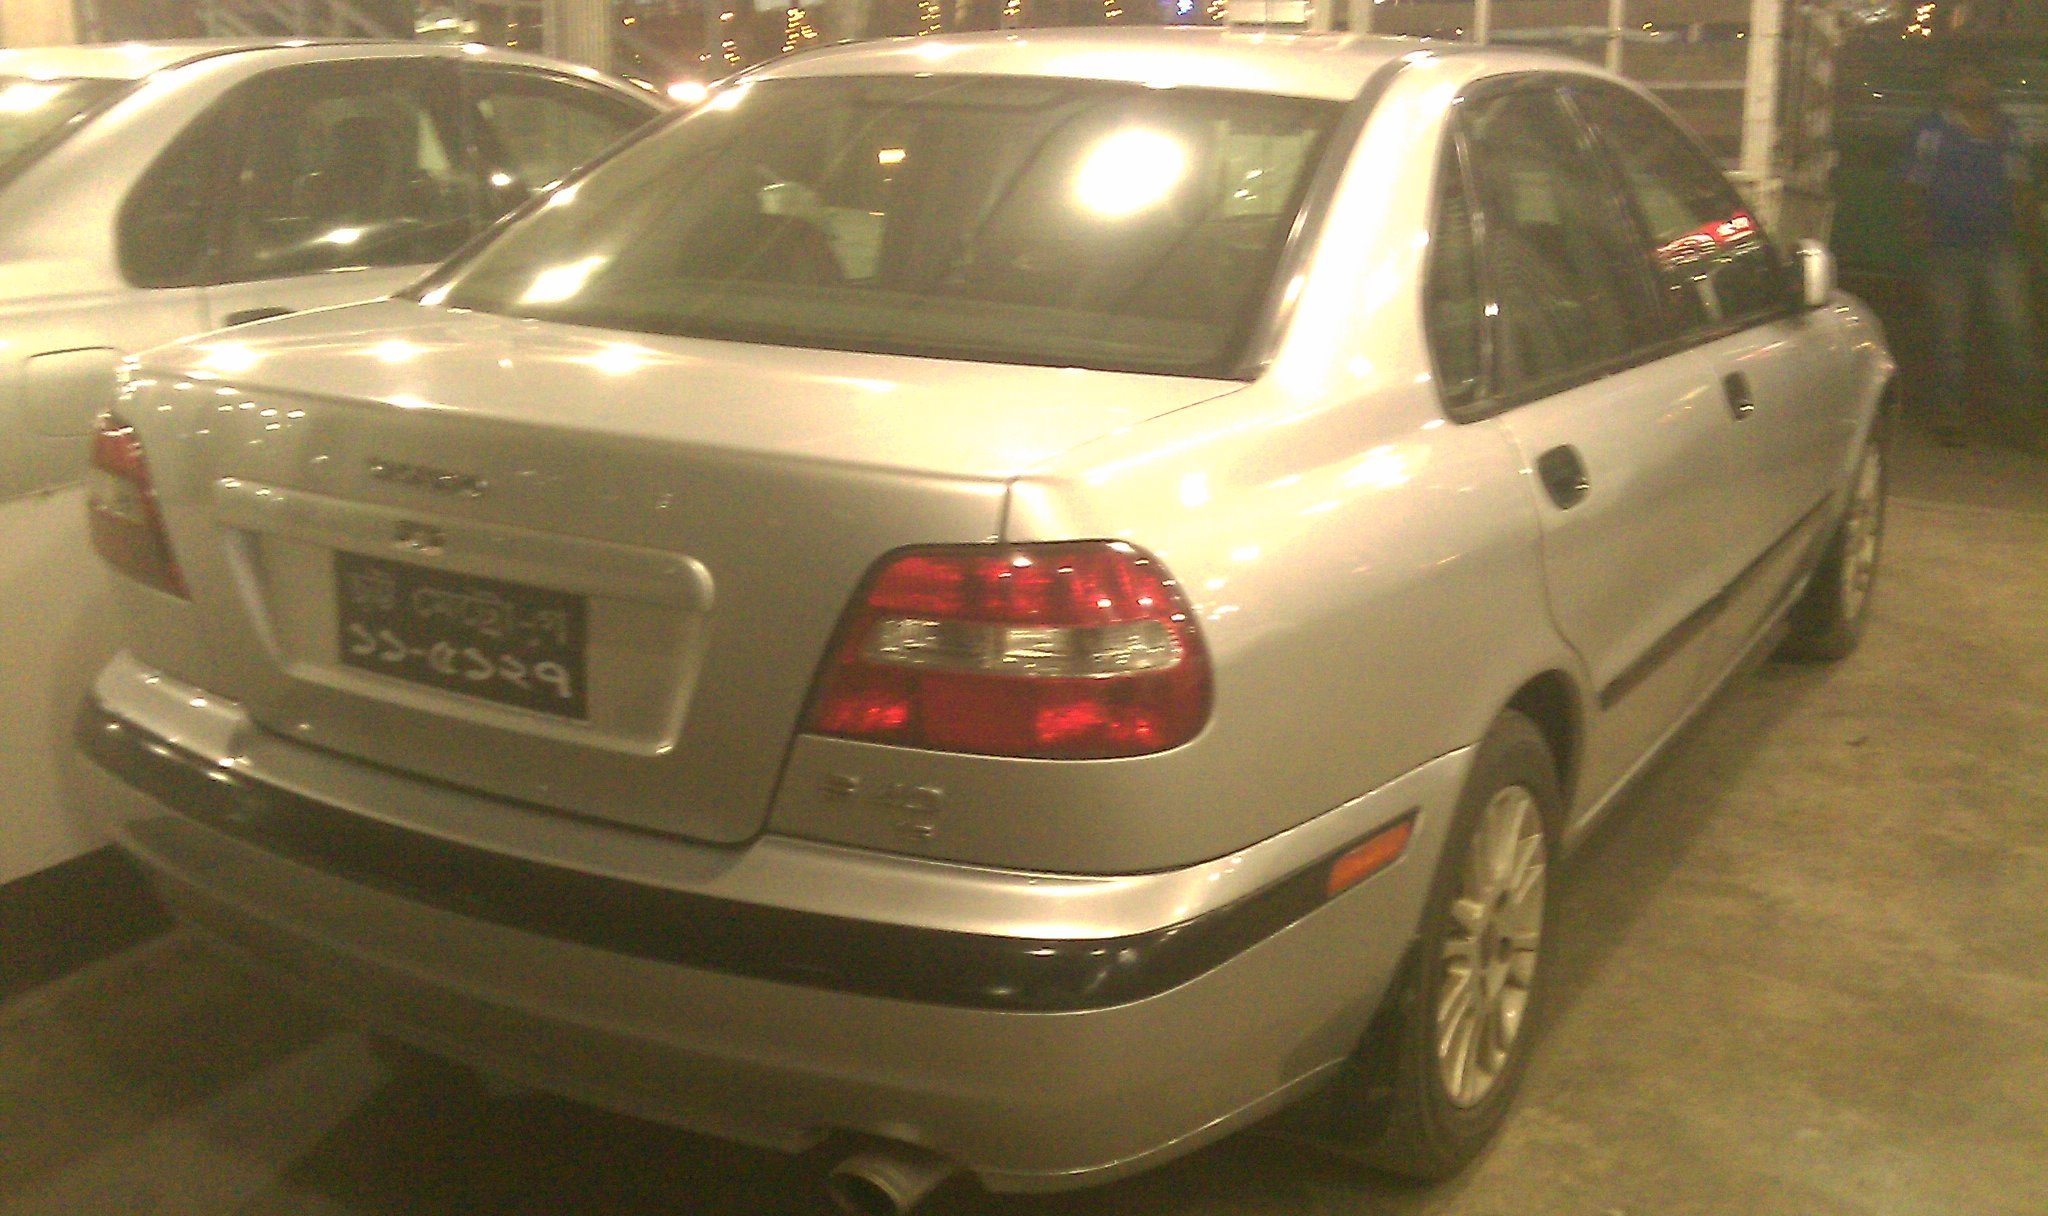 Volvo S40 All power MT 2000 Model 2004 regi | ClickBD large image 1